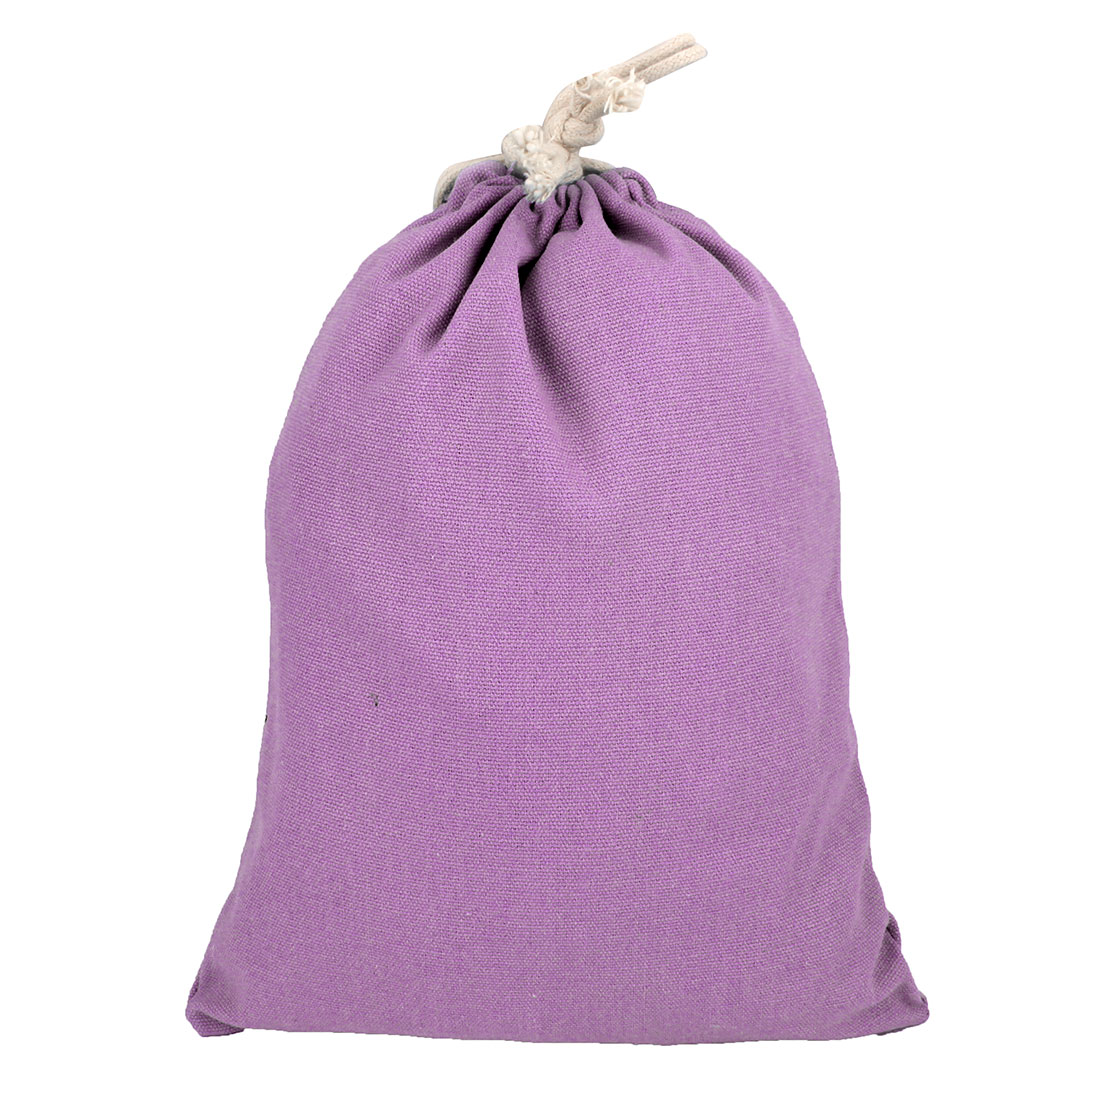 Travelling Canvas Drawstring String Pouch Storage Packing Gift Toe Bag Purple